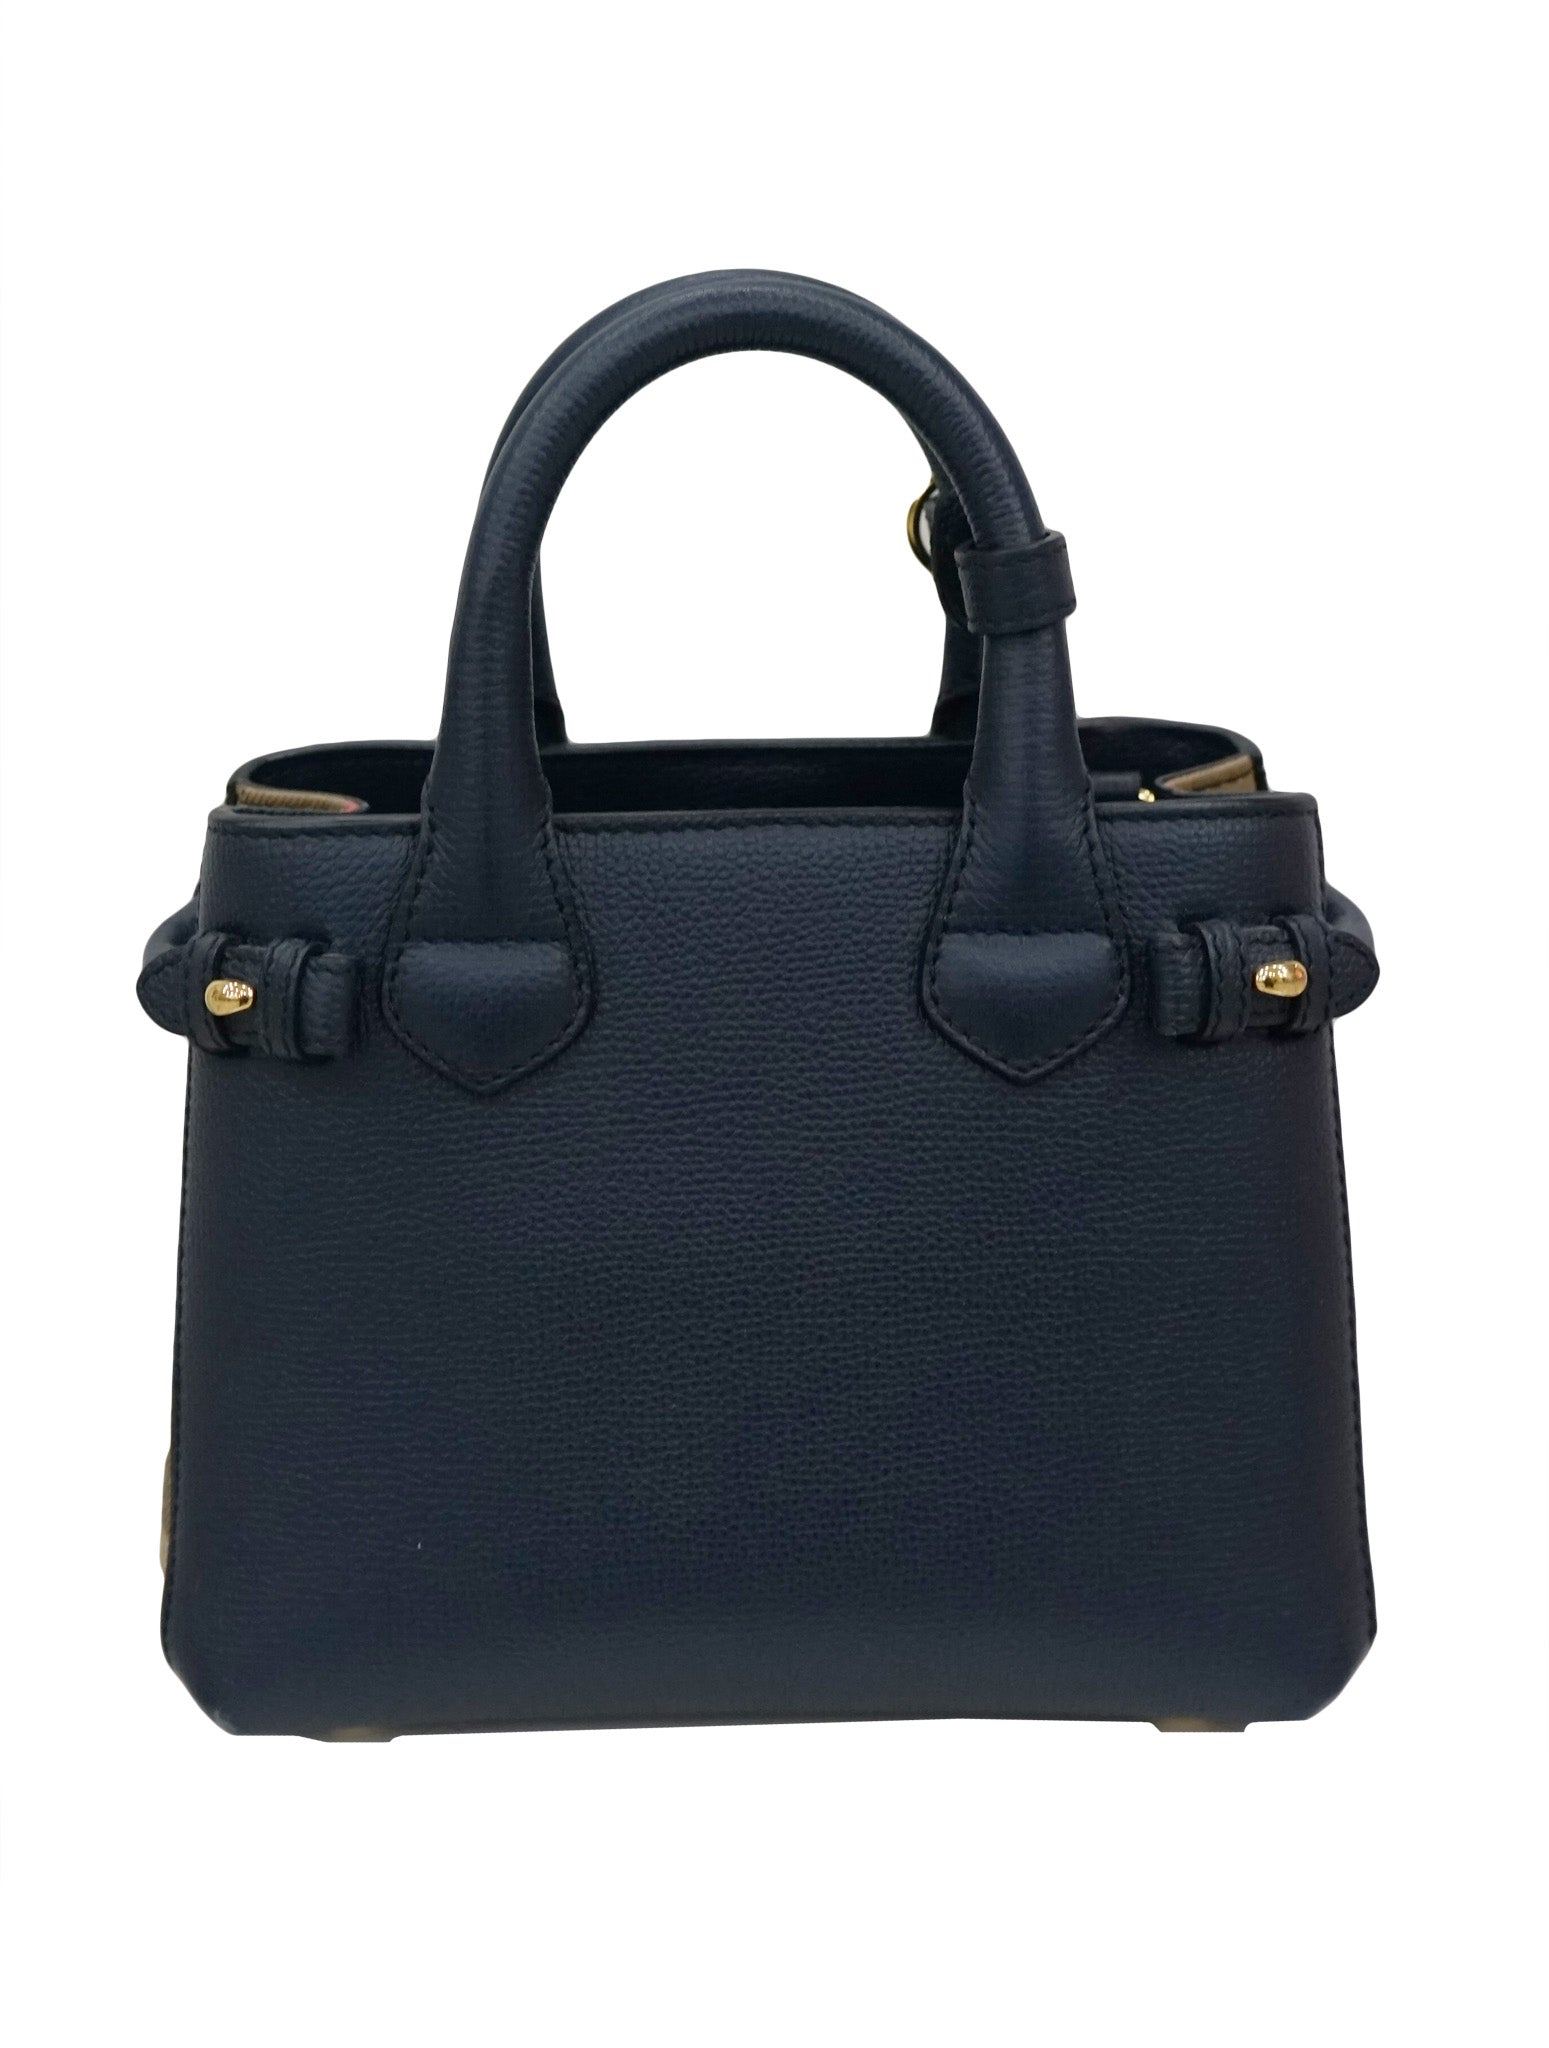 GRAINY CALFSKIN HOUSE CHECK SMALL TOTE